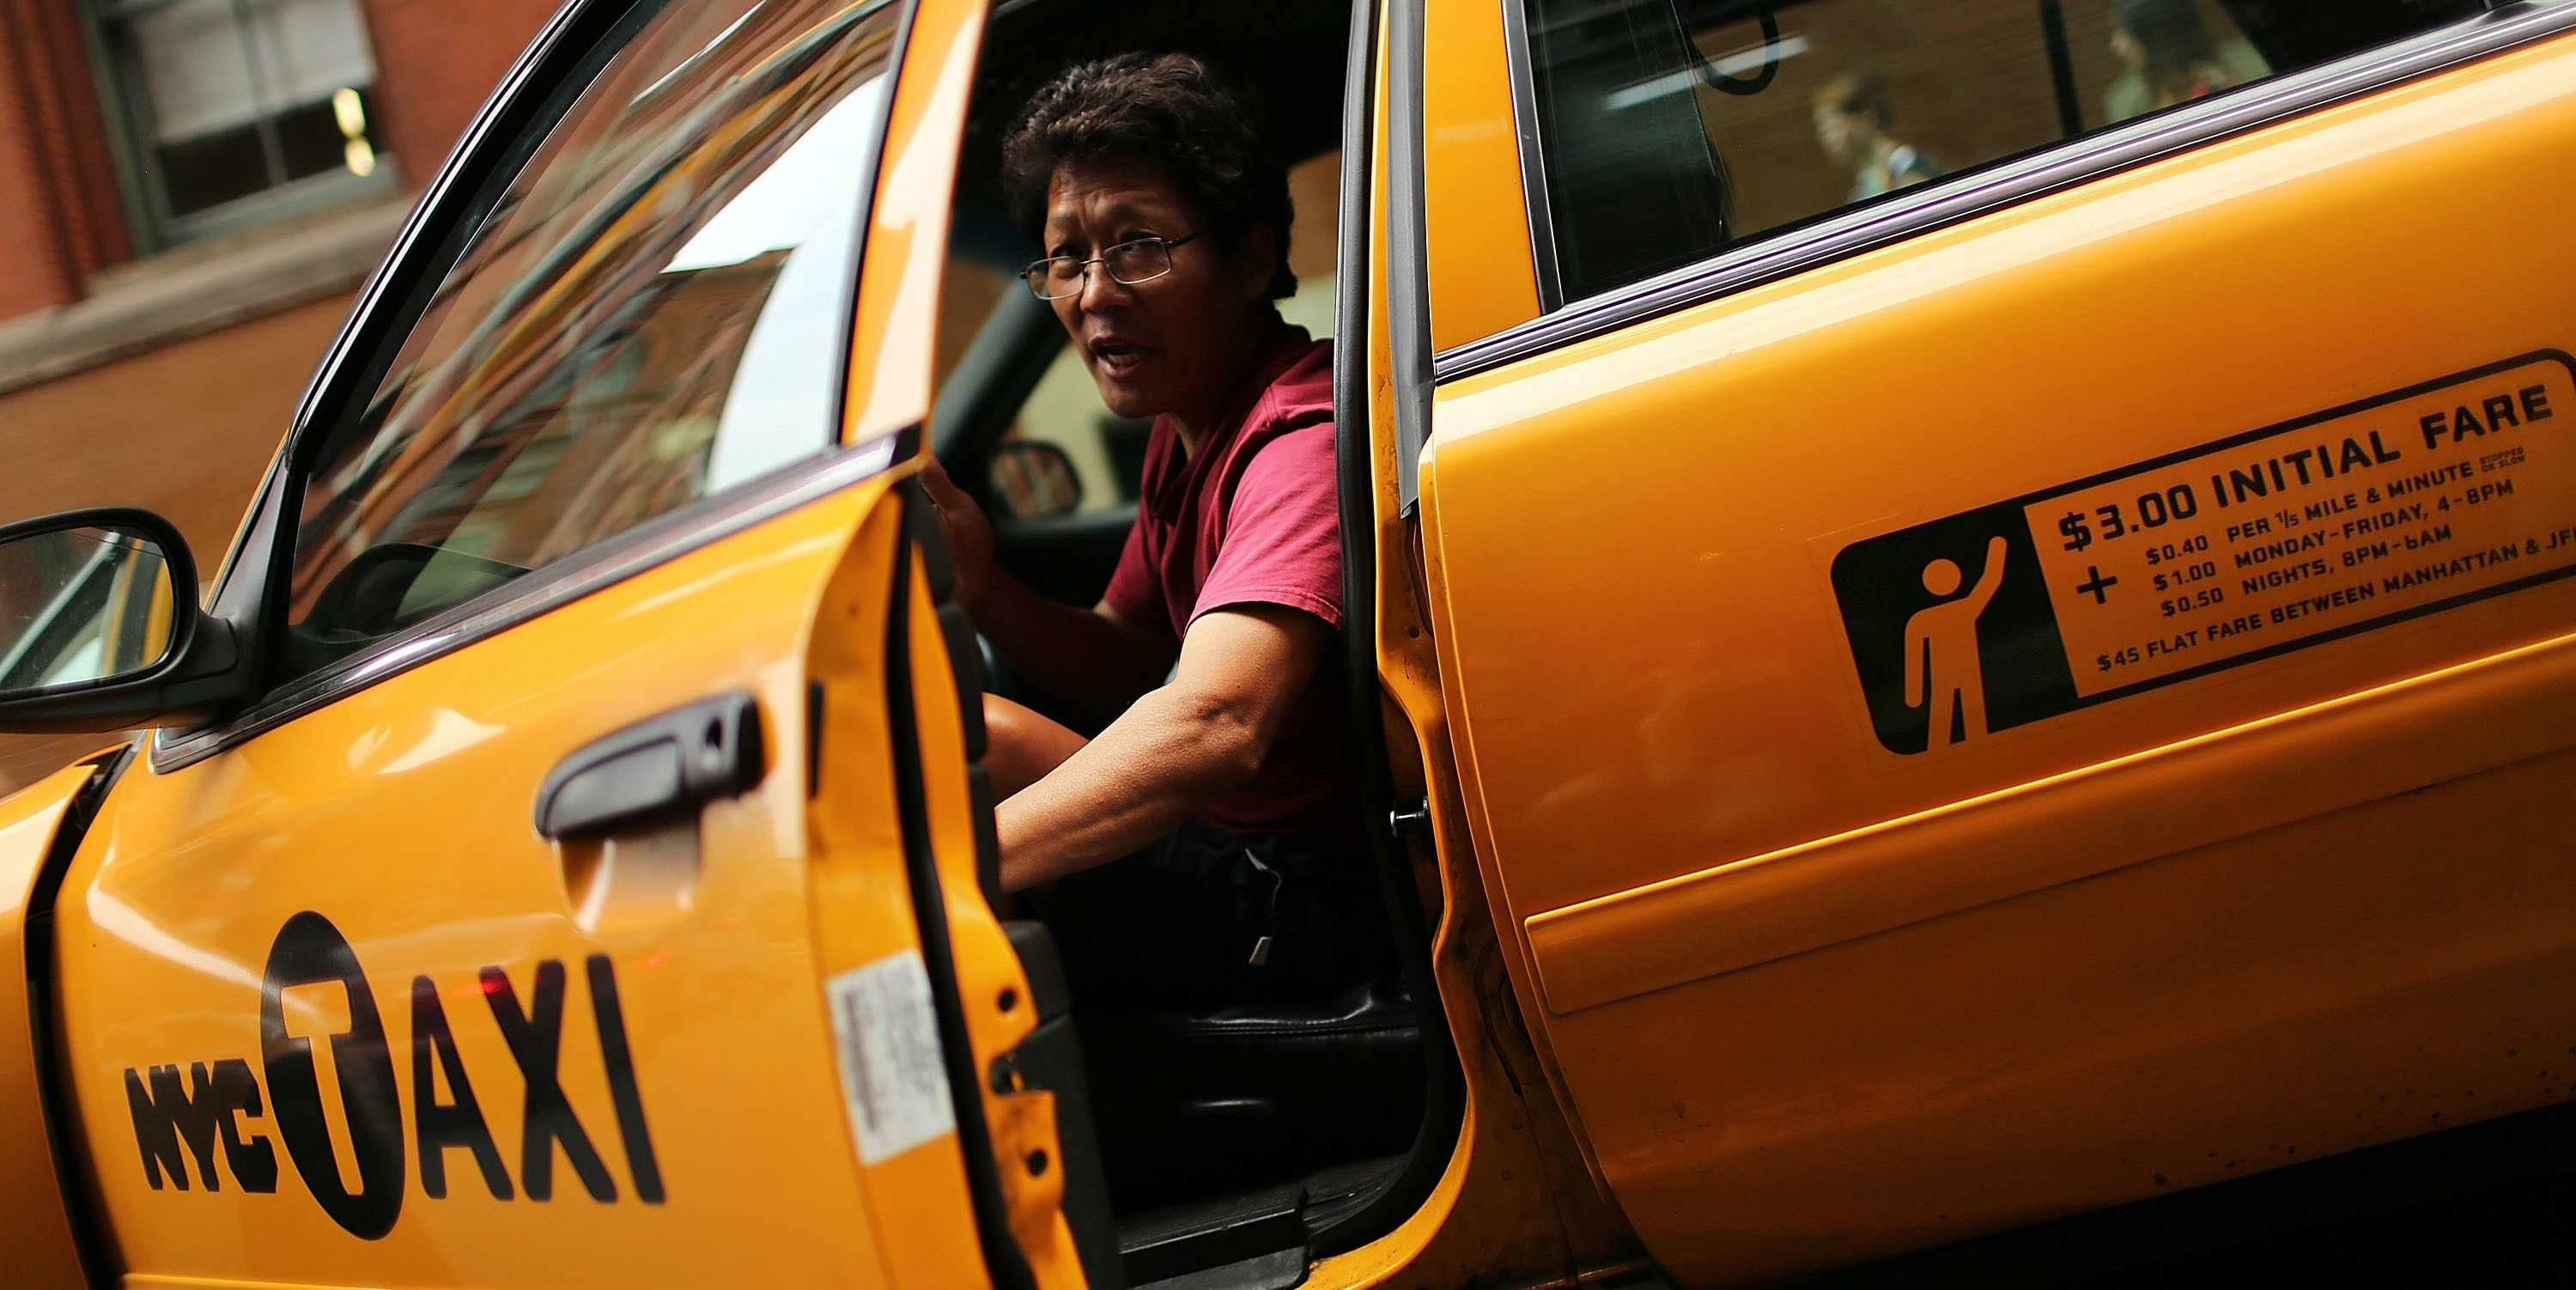 NEW YORK, NY - SEPTEMBER 04: A taxi driver pauses in his vehicle on September 4, 2012 in New York City. As of Tuesday, yellow taxis may begin charging more following an approved fare increase for riders. Taxi rates have remained virtually unchanged since 2006 and will now rise by an expected 17 percent. (Photo by Spencer Platt/Getty Images)